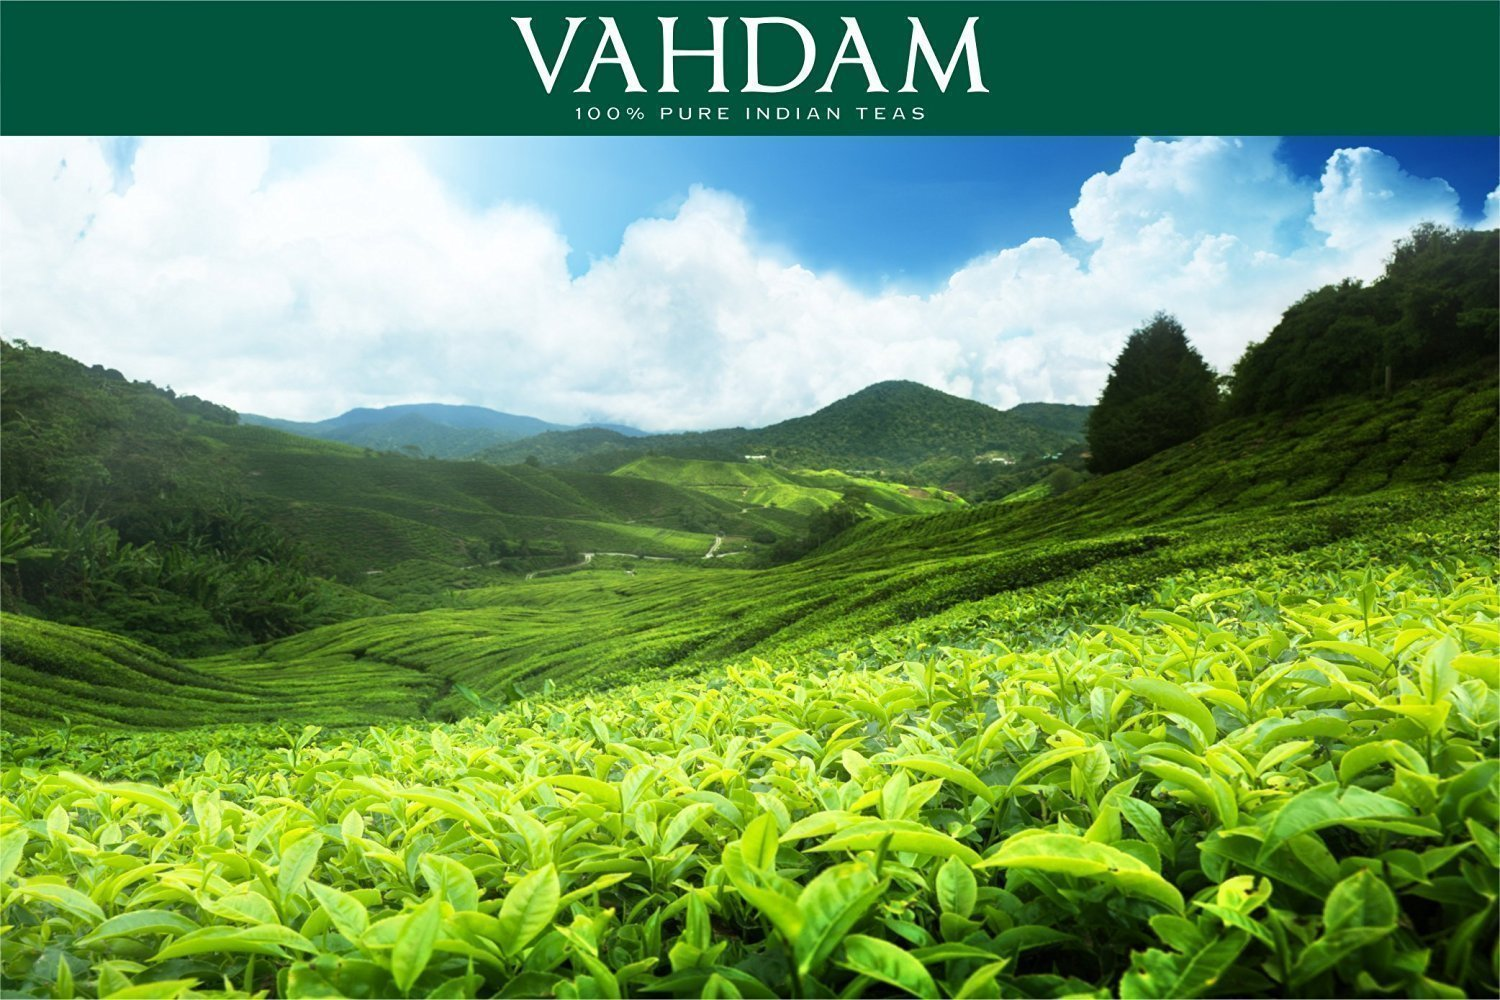 VAHDAM oolong tea is 100% Pure Indian Teas